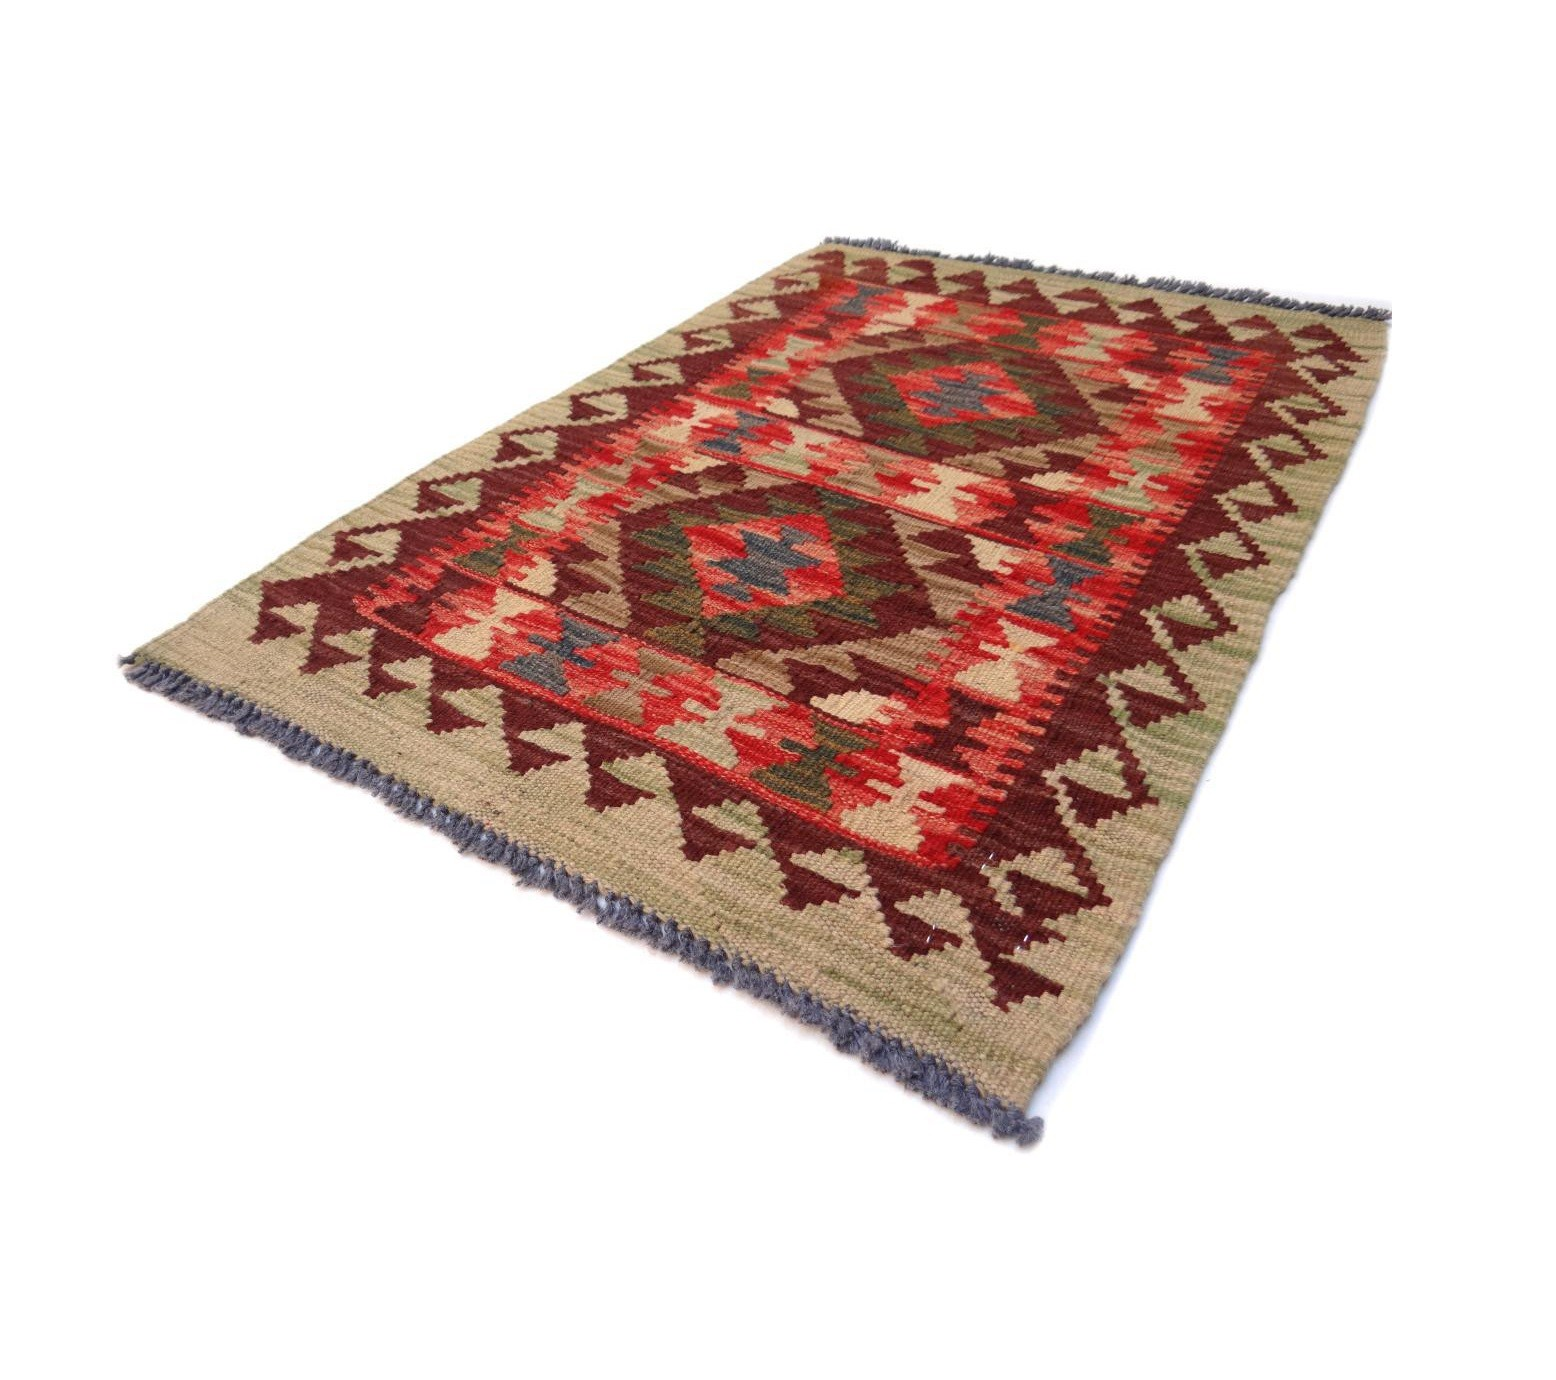 Kilim Afghan Traditionnel 85 x 58 cm